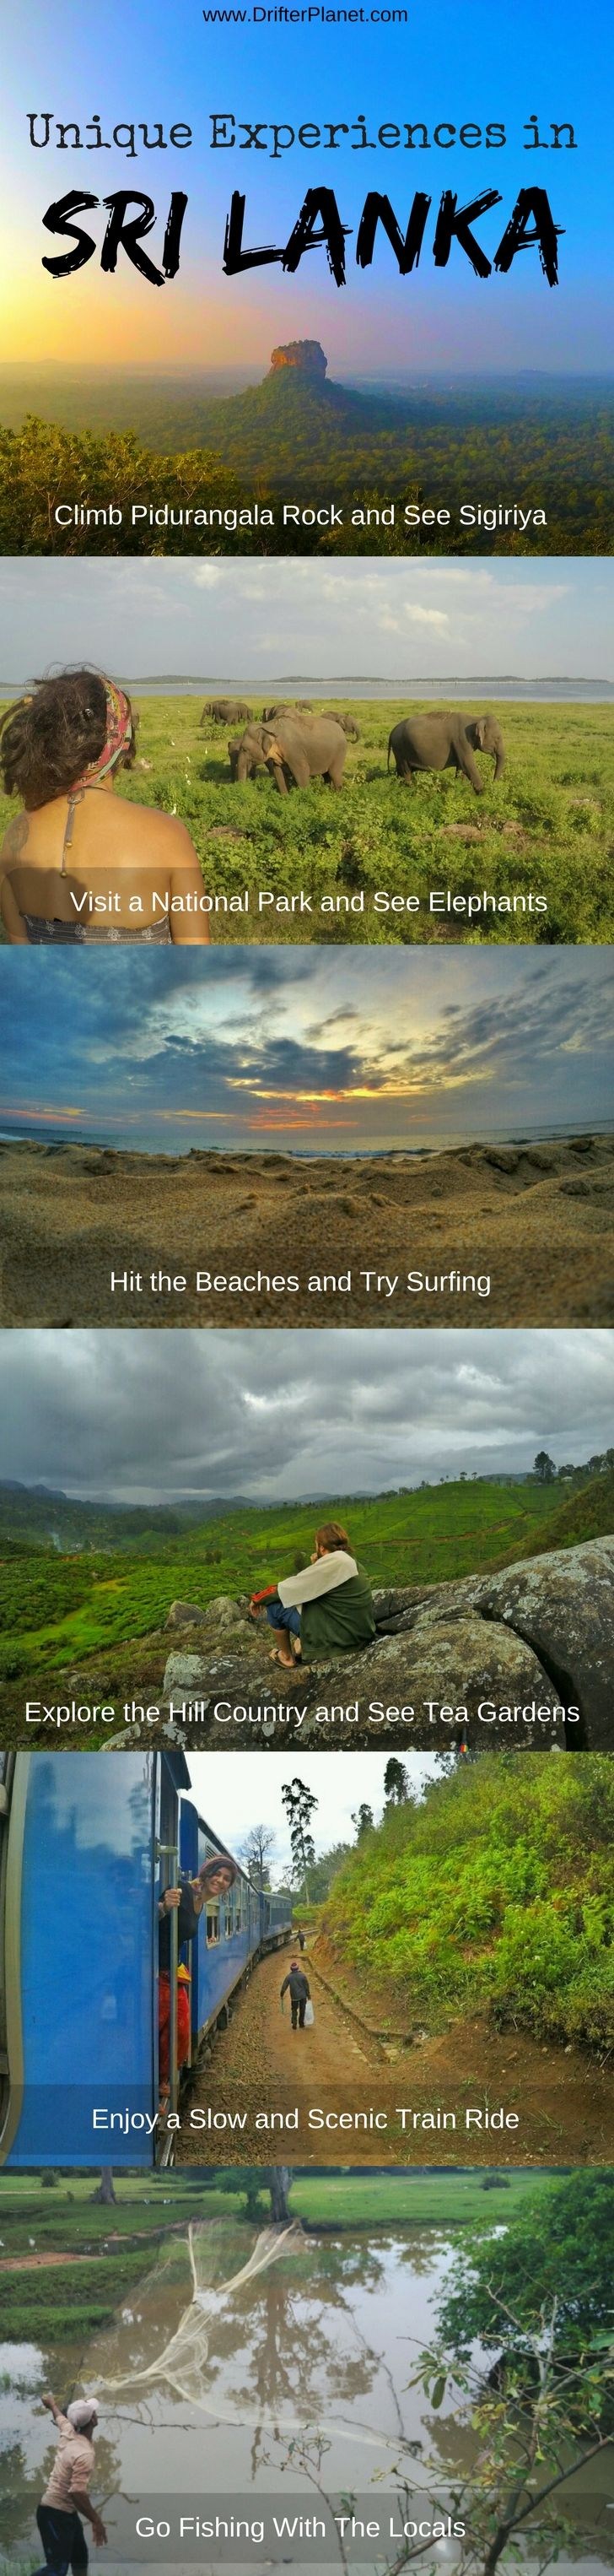 Unique experiences and things to do in Sri Lanka - one of the greenest countries. Amazing viewpoints, forest, hills, tea gardens, train rides, fishing, monkeys, elephants and more! Read the post to know more. - Drifter Planet